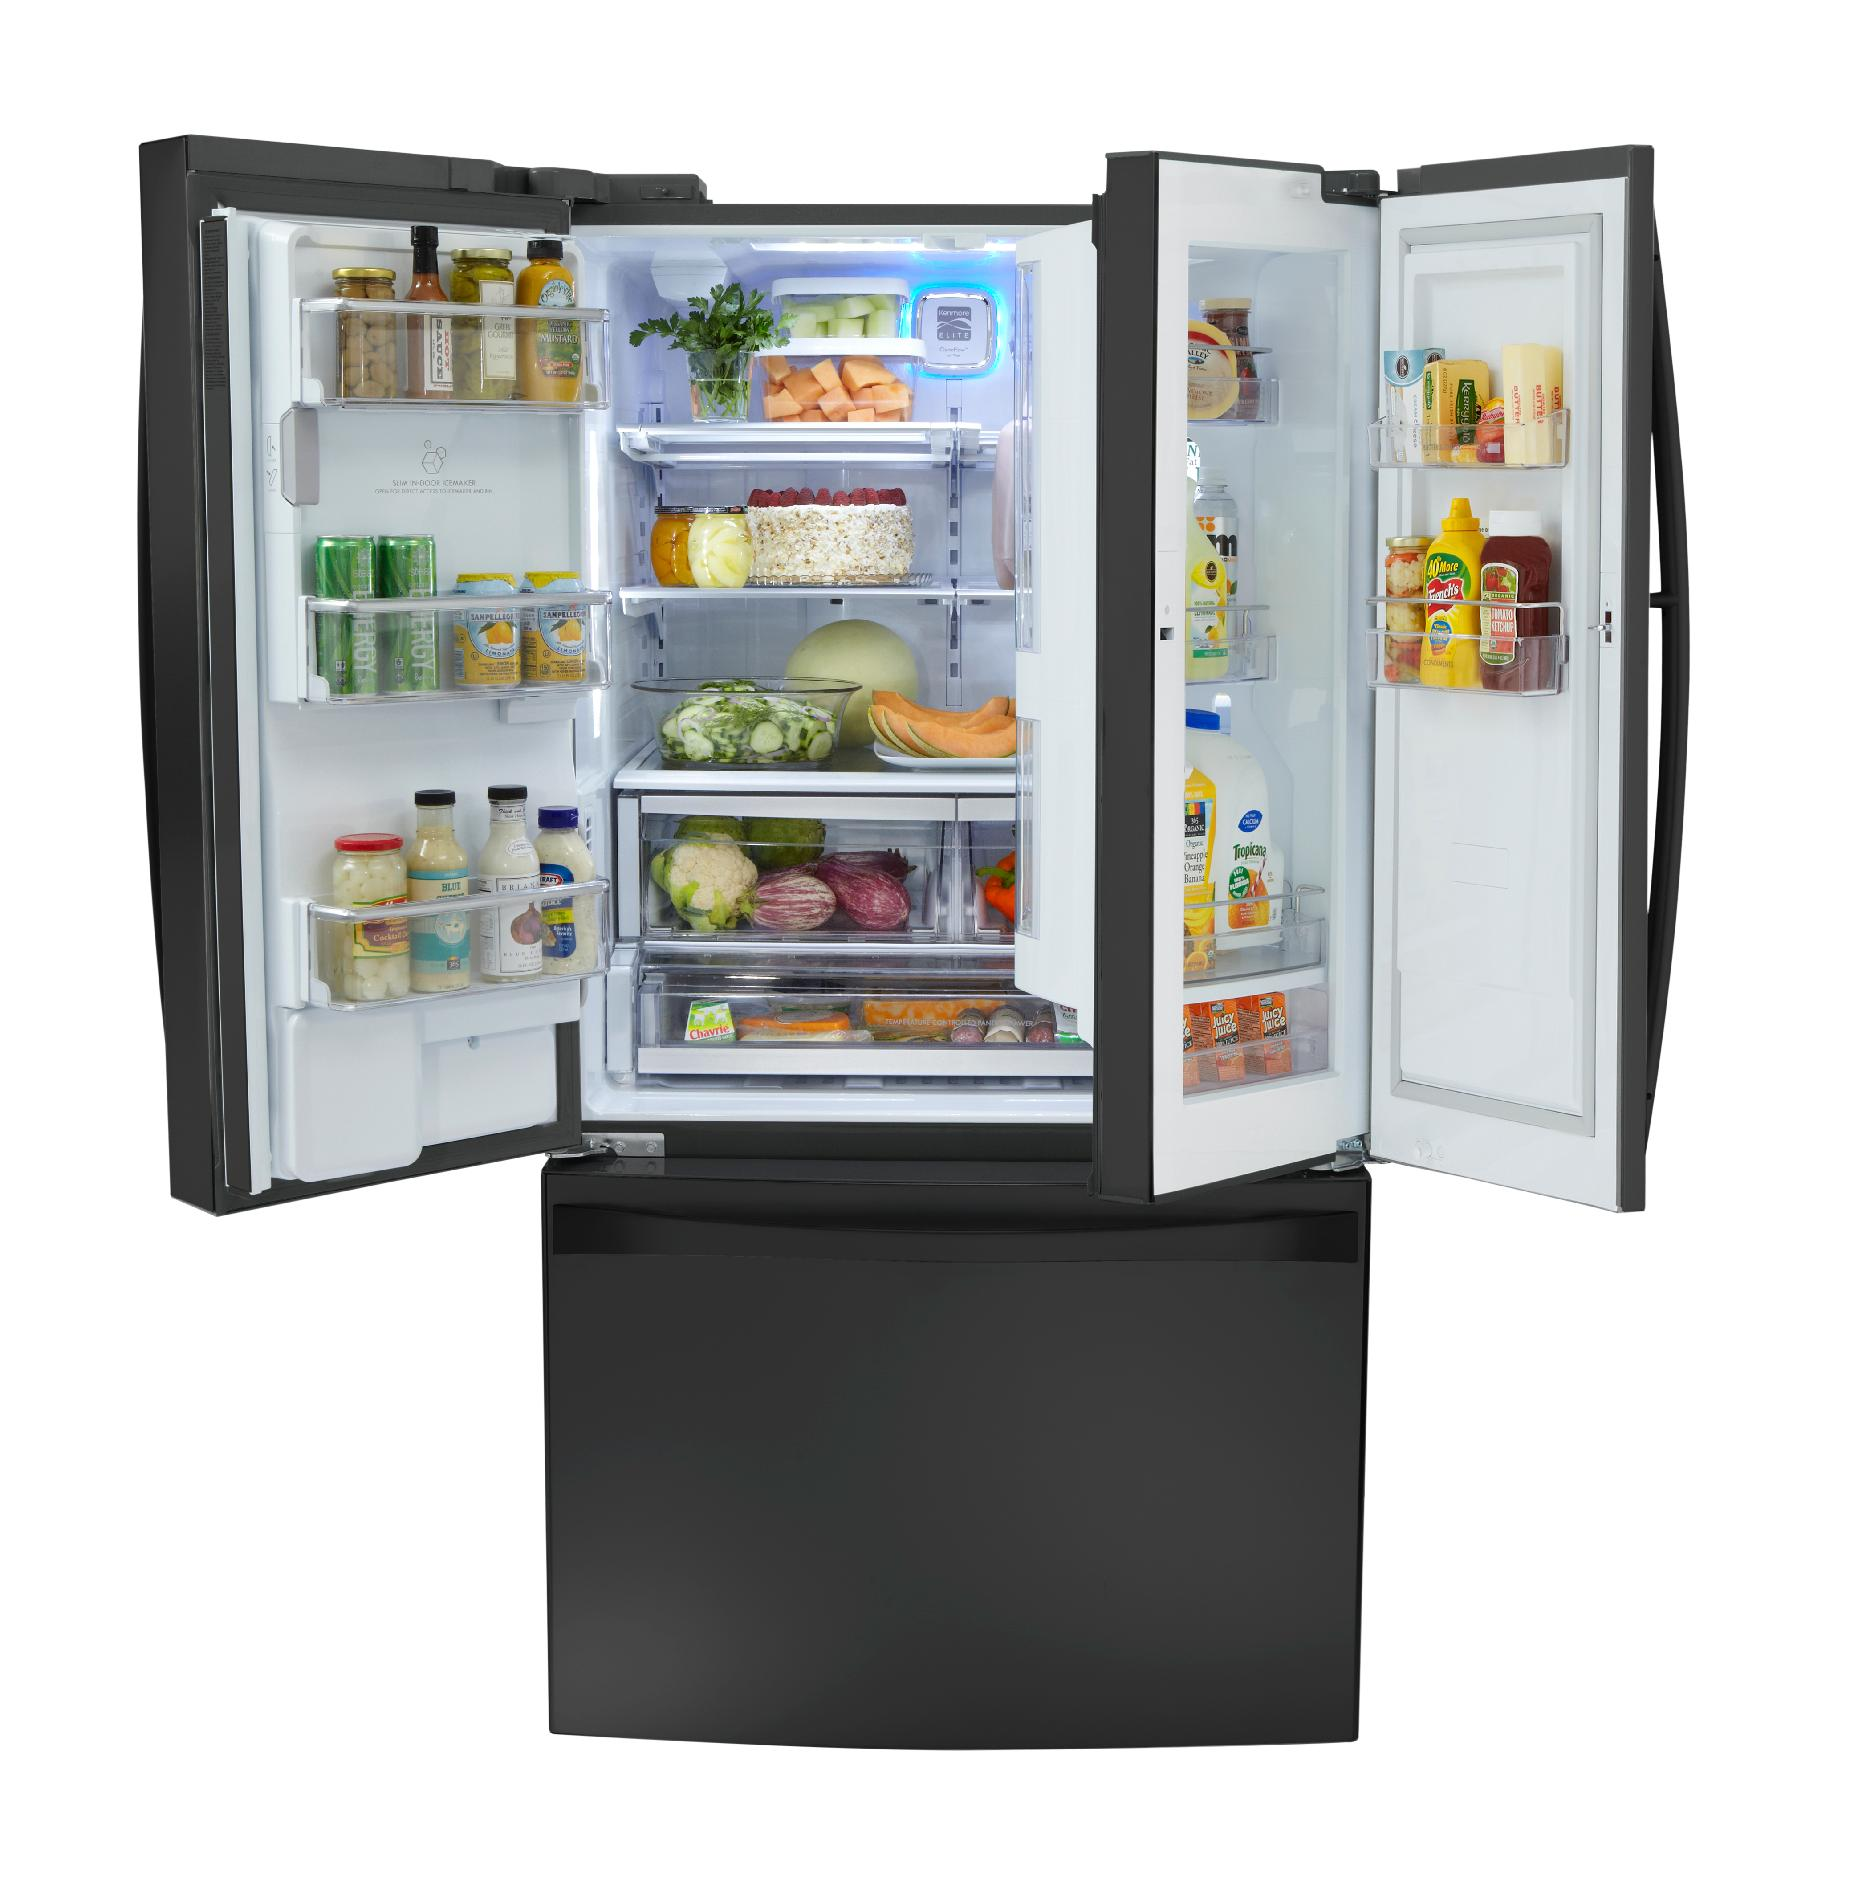 Kenmore Elite 29 cu. ft. Grab-N-Go French Door Bottom-Freezer Refrigerator – Black